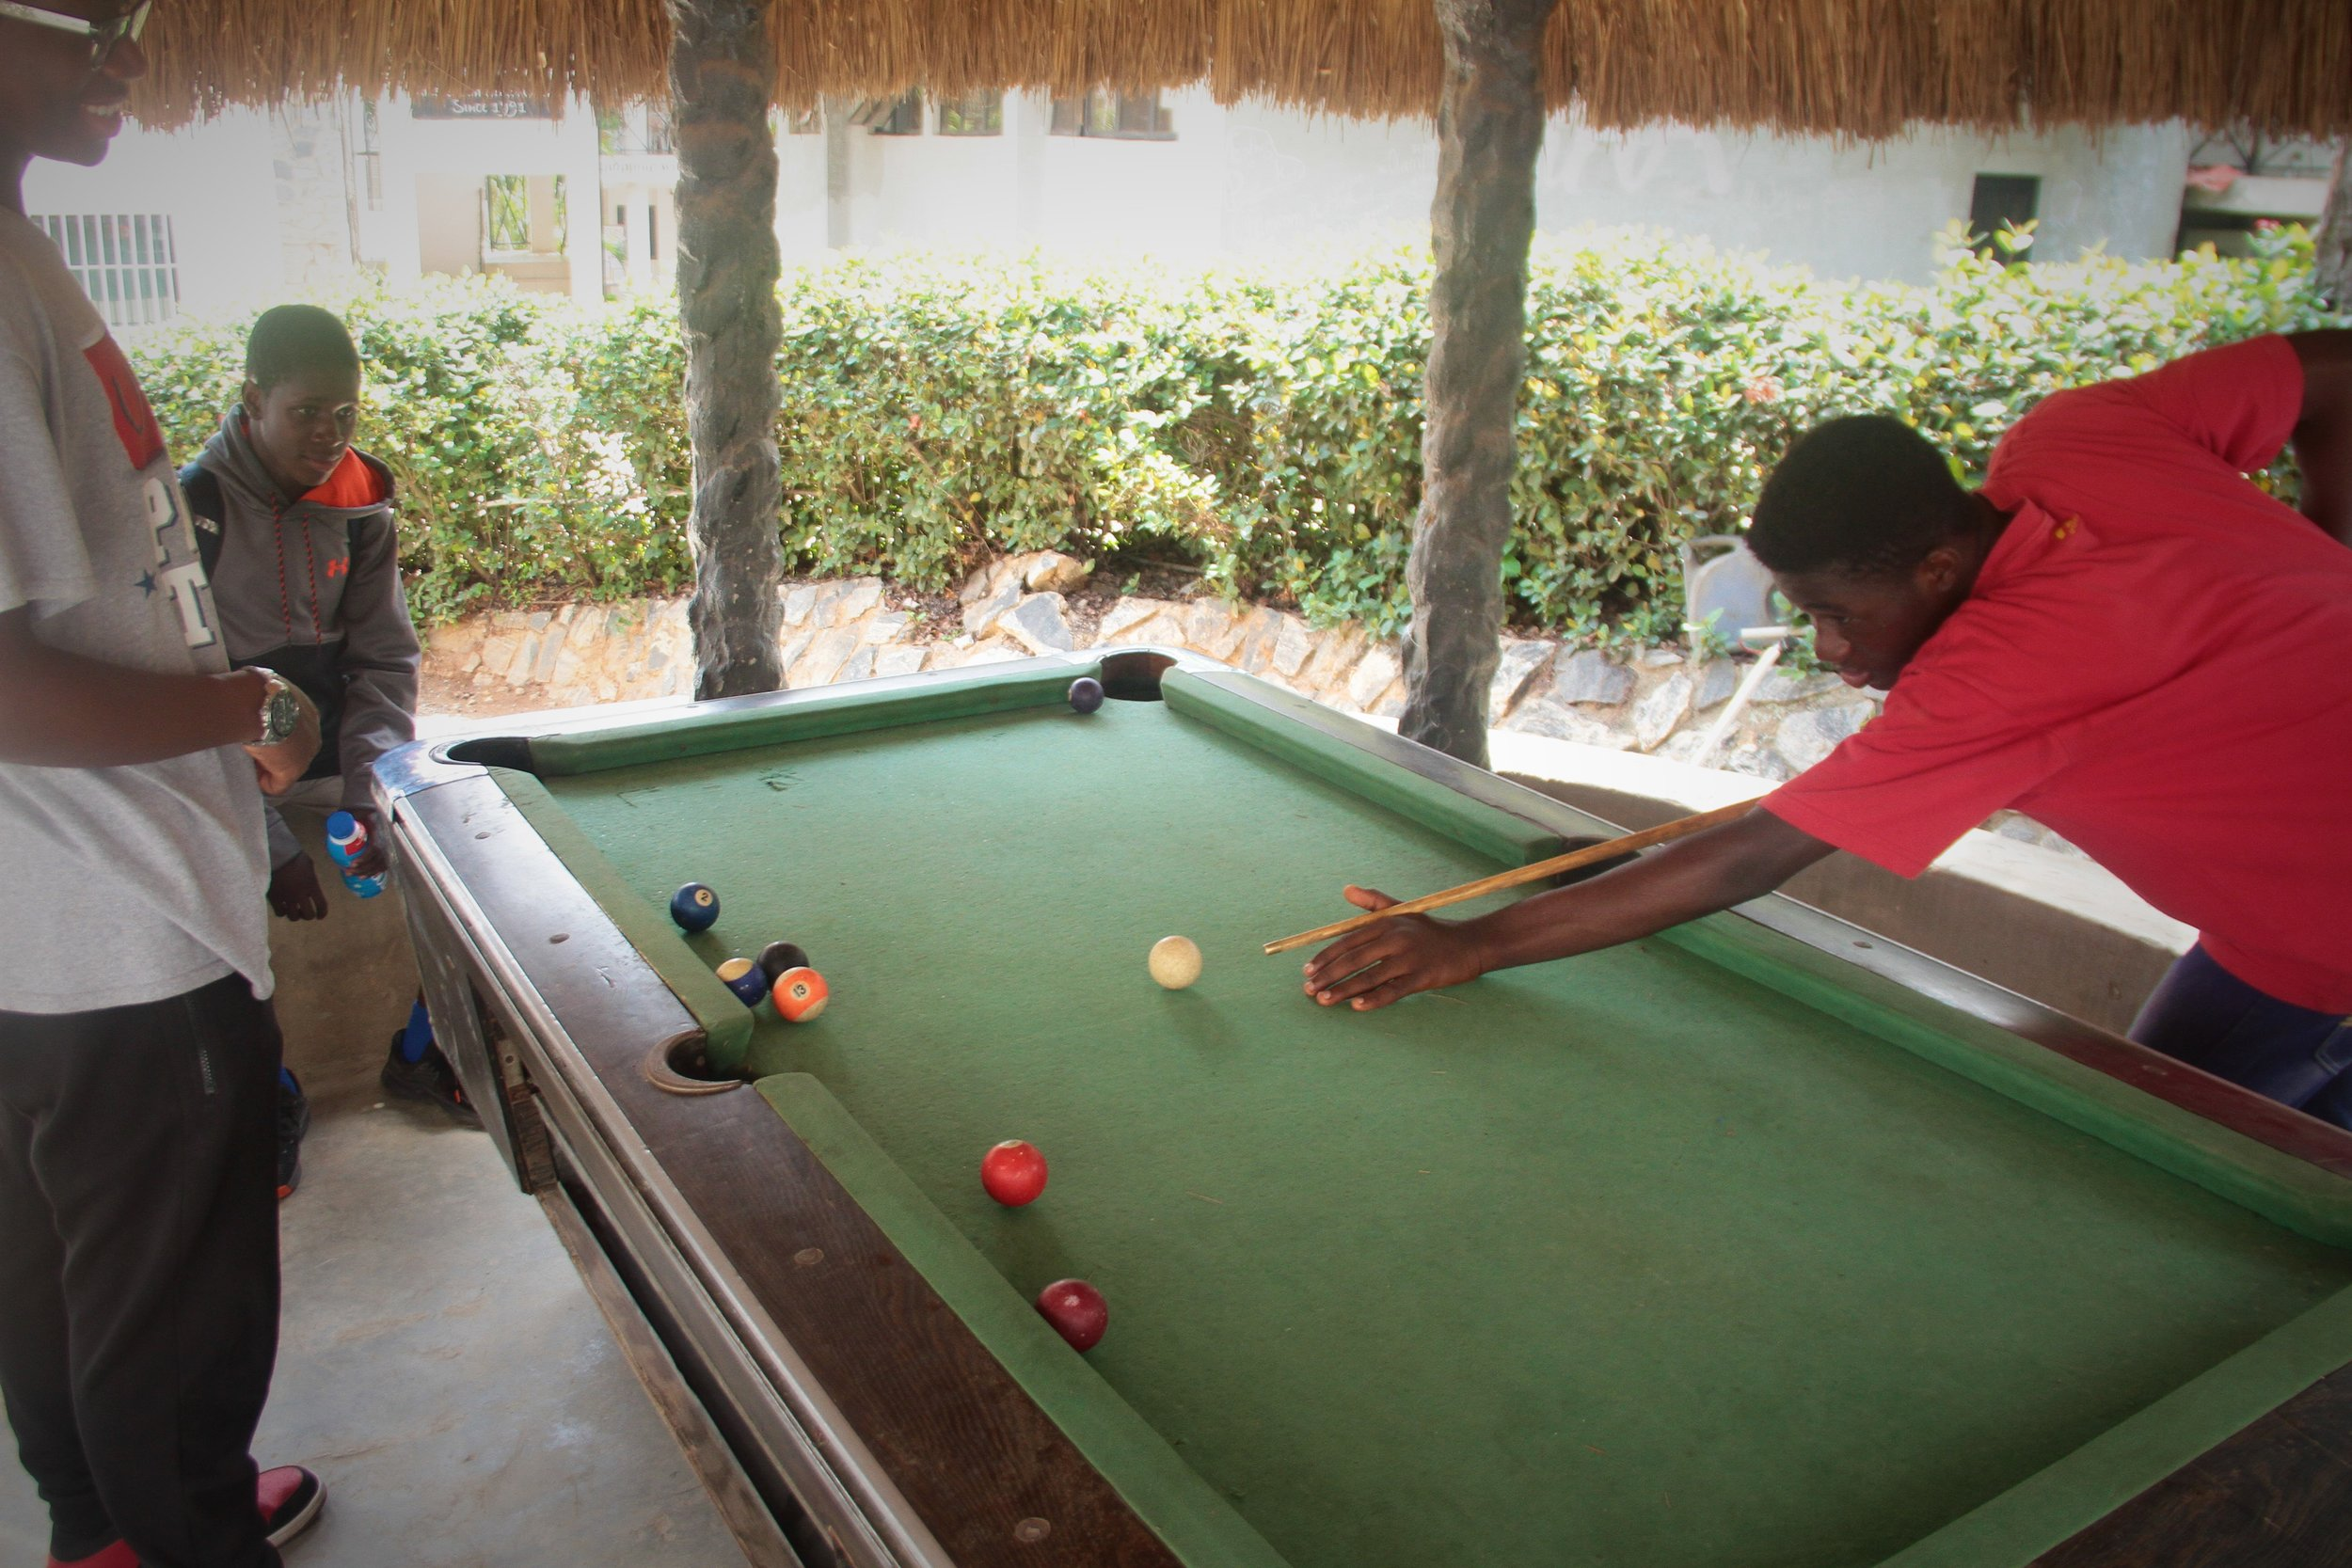 12th graders enjoying a game of pool during their break.